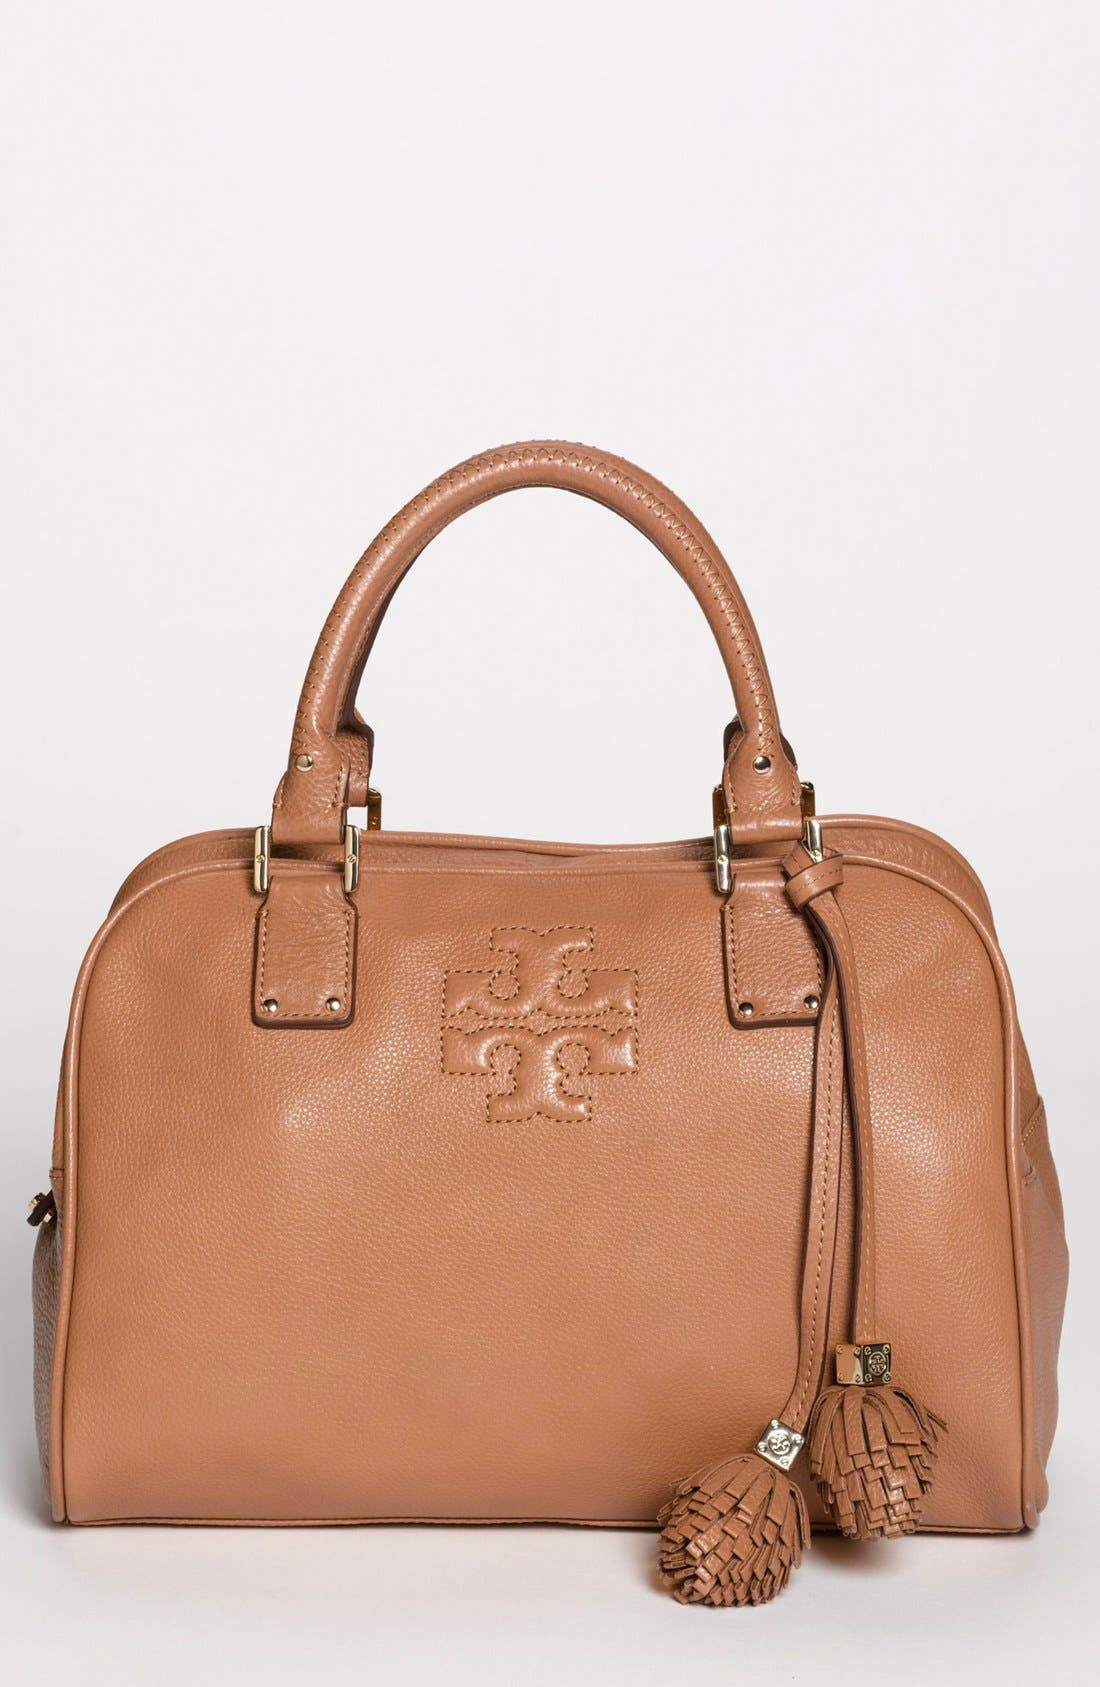 Alternate Image 1 Selected - Tory Burch 'Thea' Leather Satchel